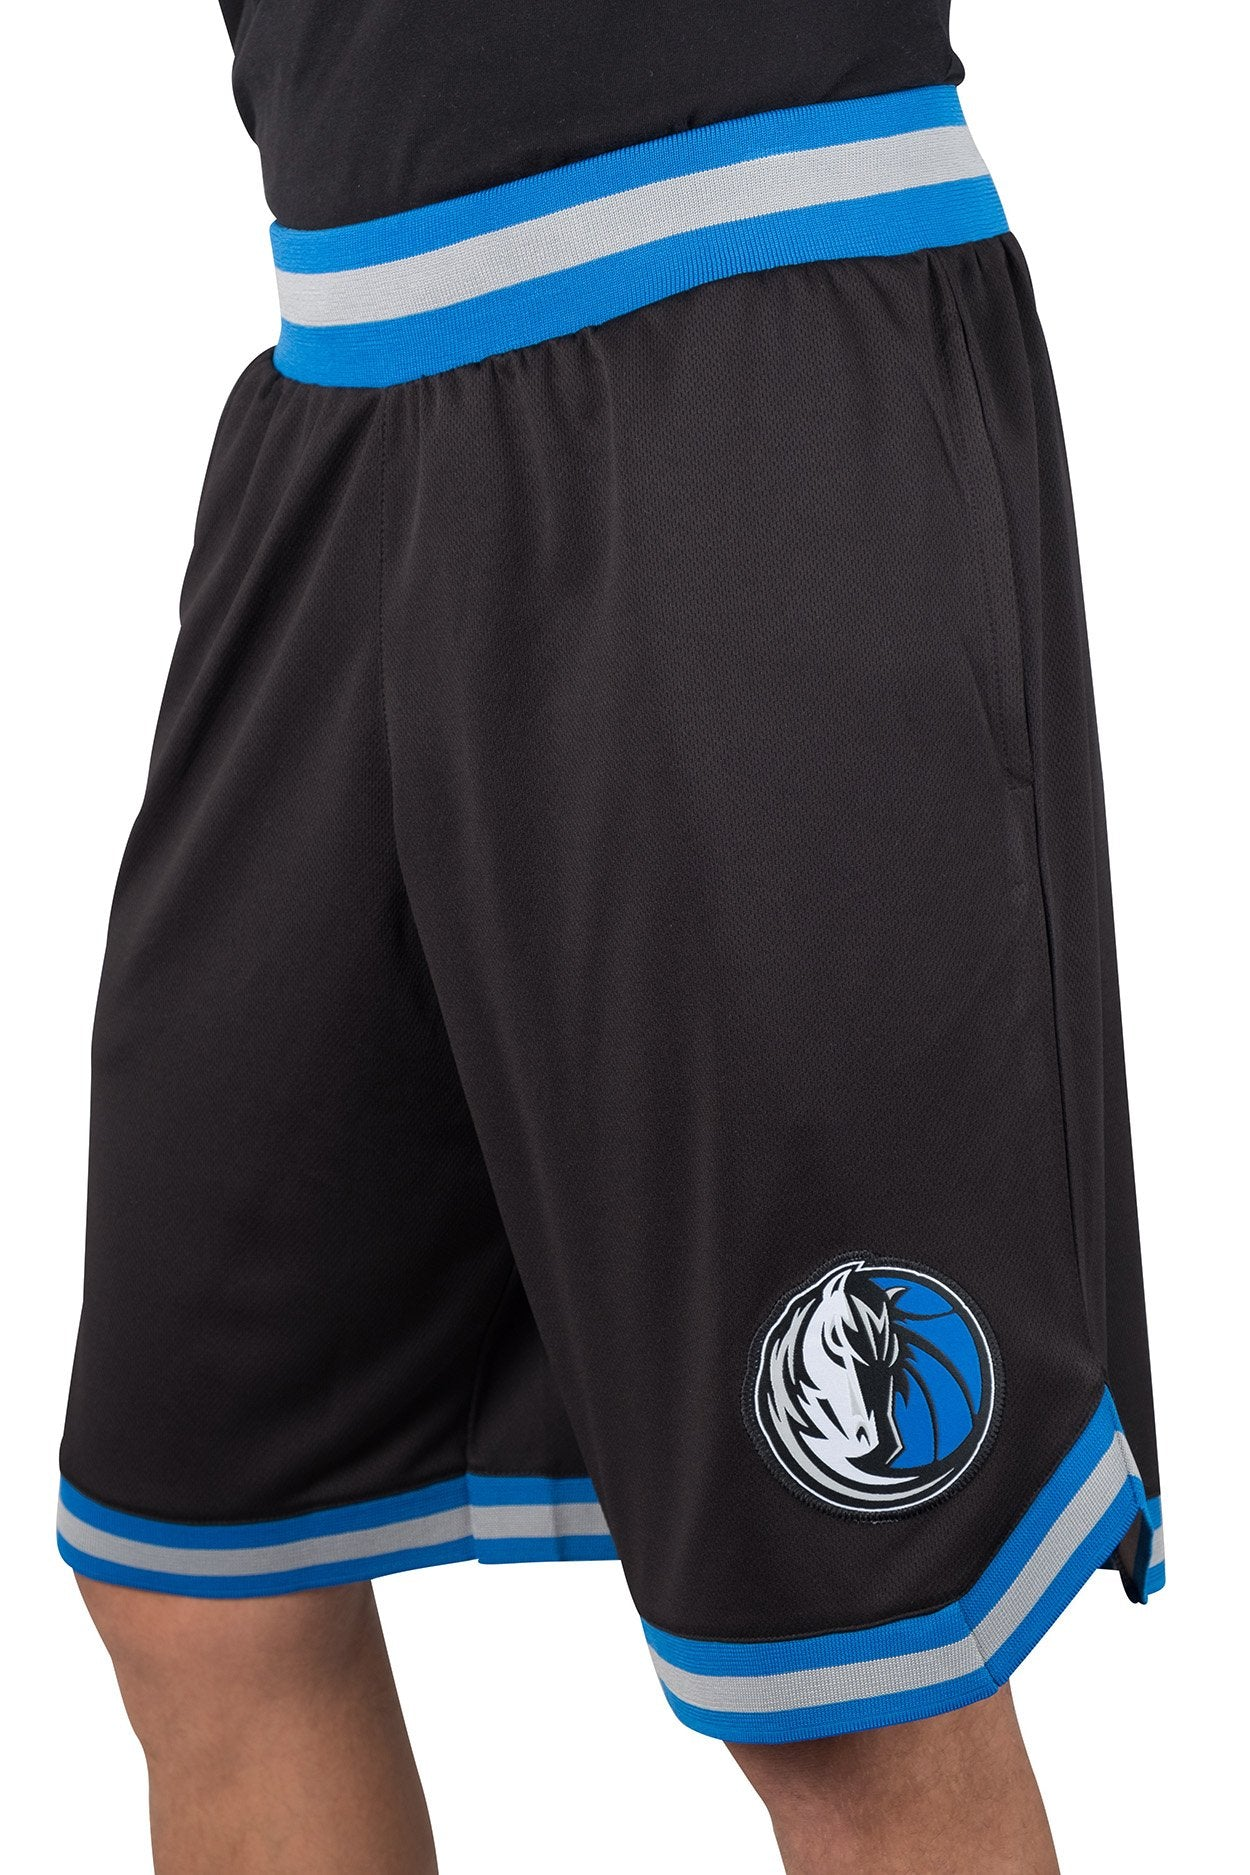 NBA Dallas Mavericks Men's Basketball Shorts|Dallas Mavericks